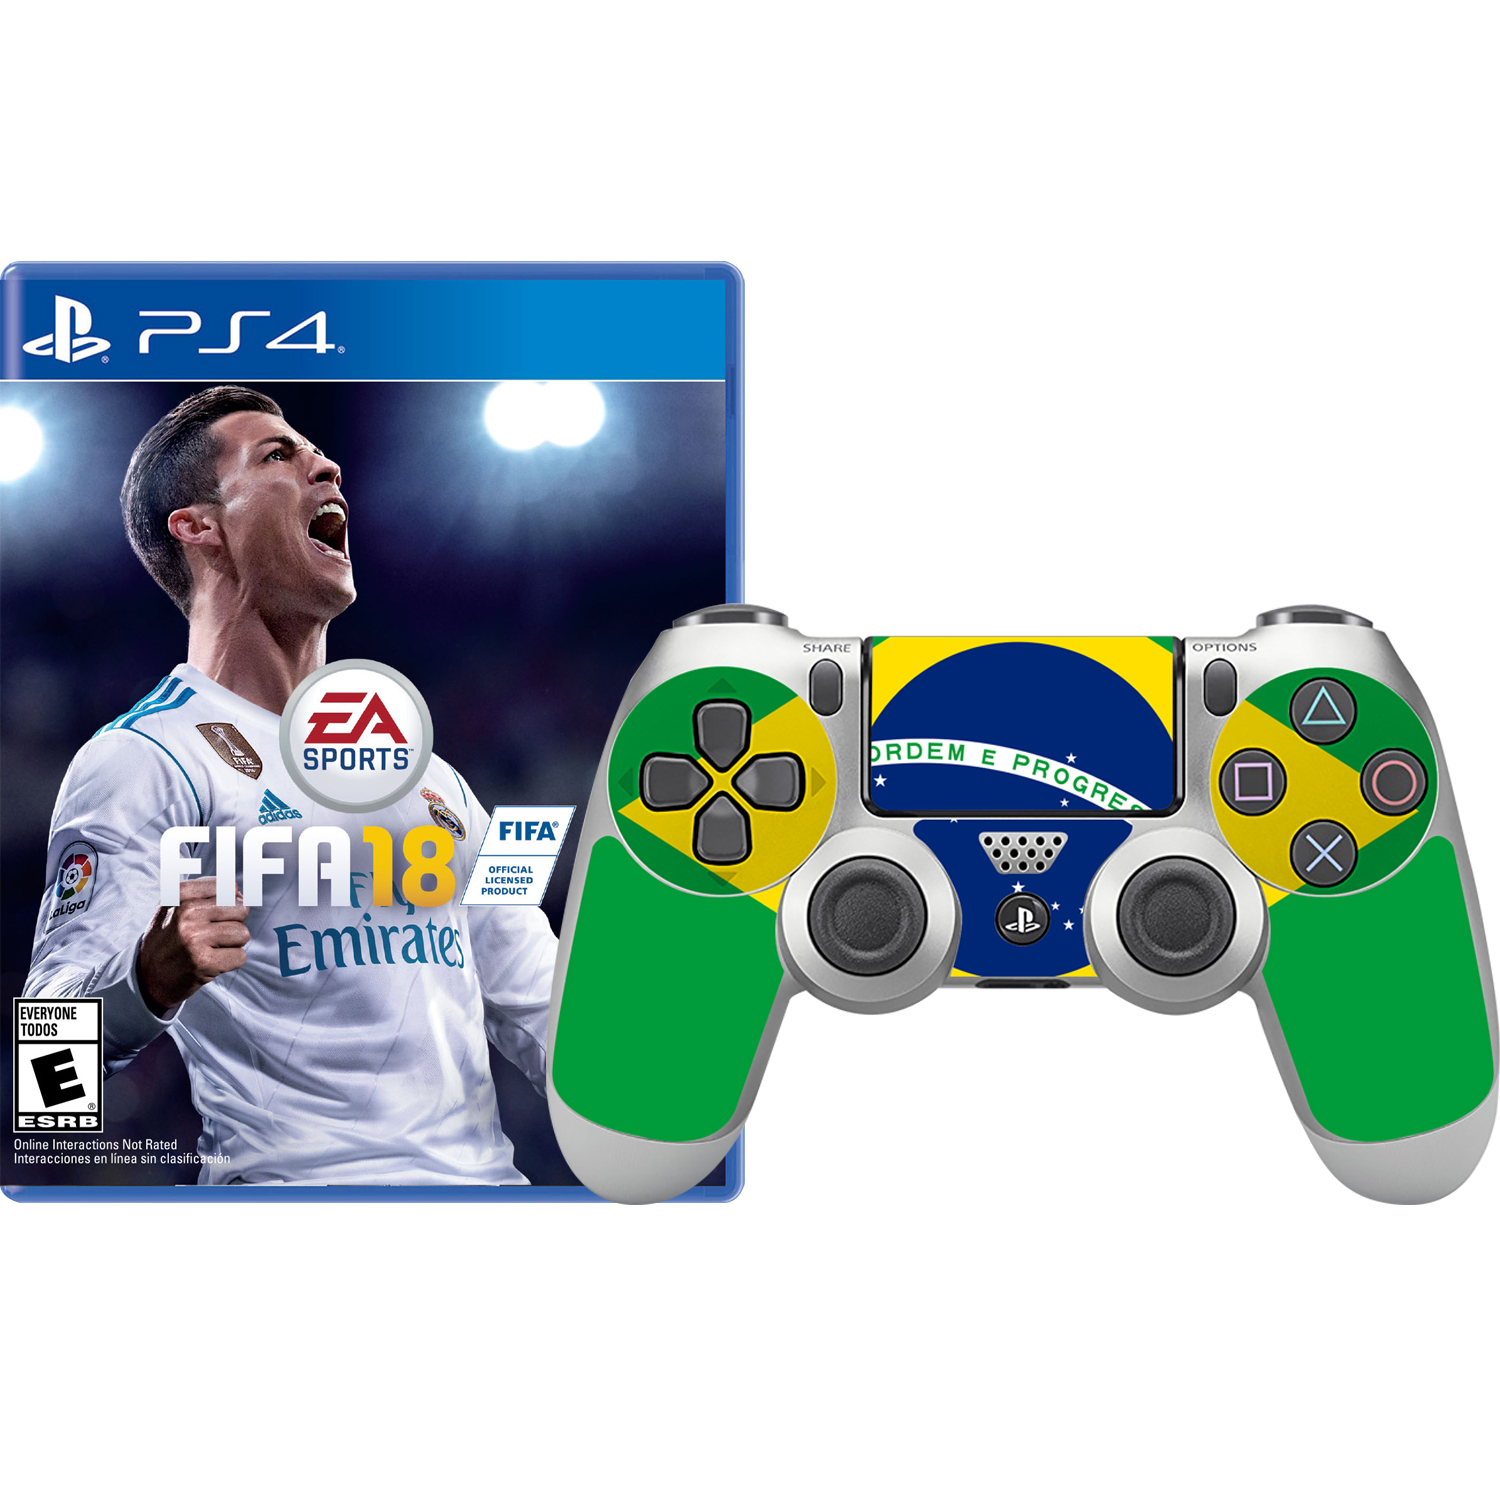 FIFA 18 and Brazil Skin Controller, Electronic Arts, PlayStation 4, 696055184910